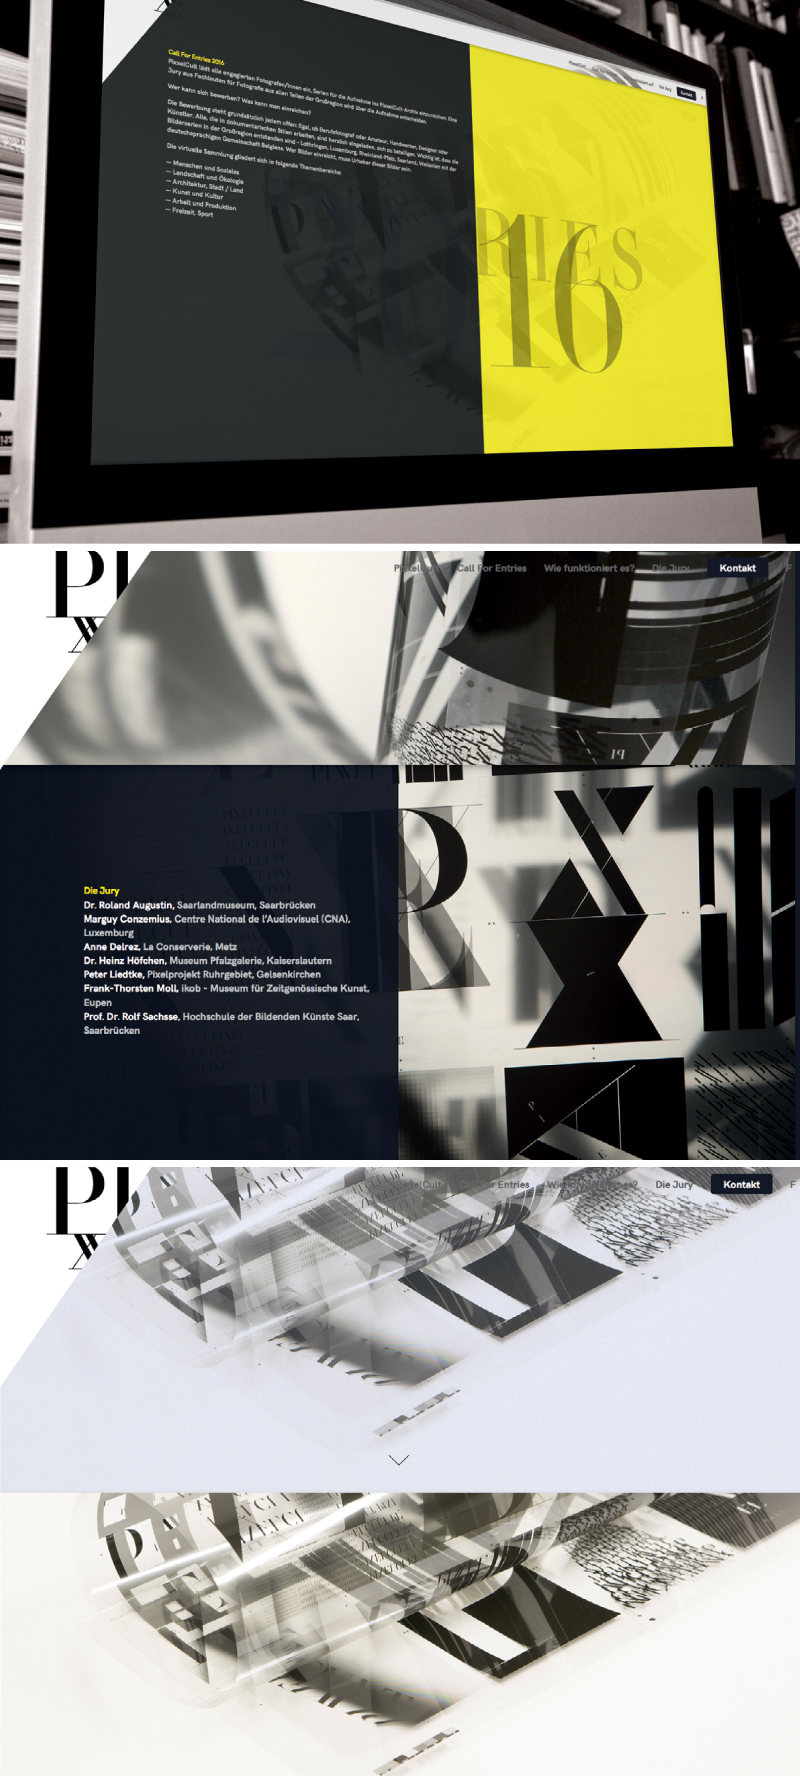 pixxelcult Web Screen Design Call-for-Entries-Design-Typografie-Corporate-Design-Gestaltung-Fotografie-als-kulturelles-Gedaechtnis-im-Saarland-und-der-Grossregion